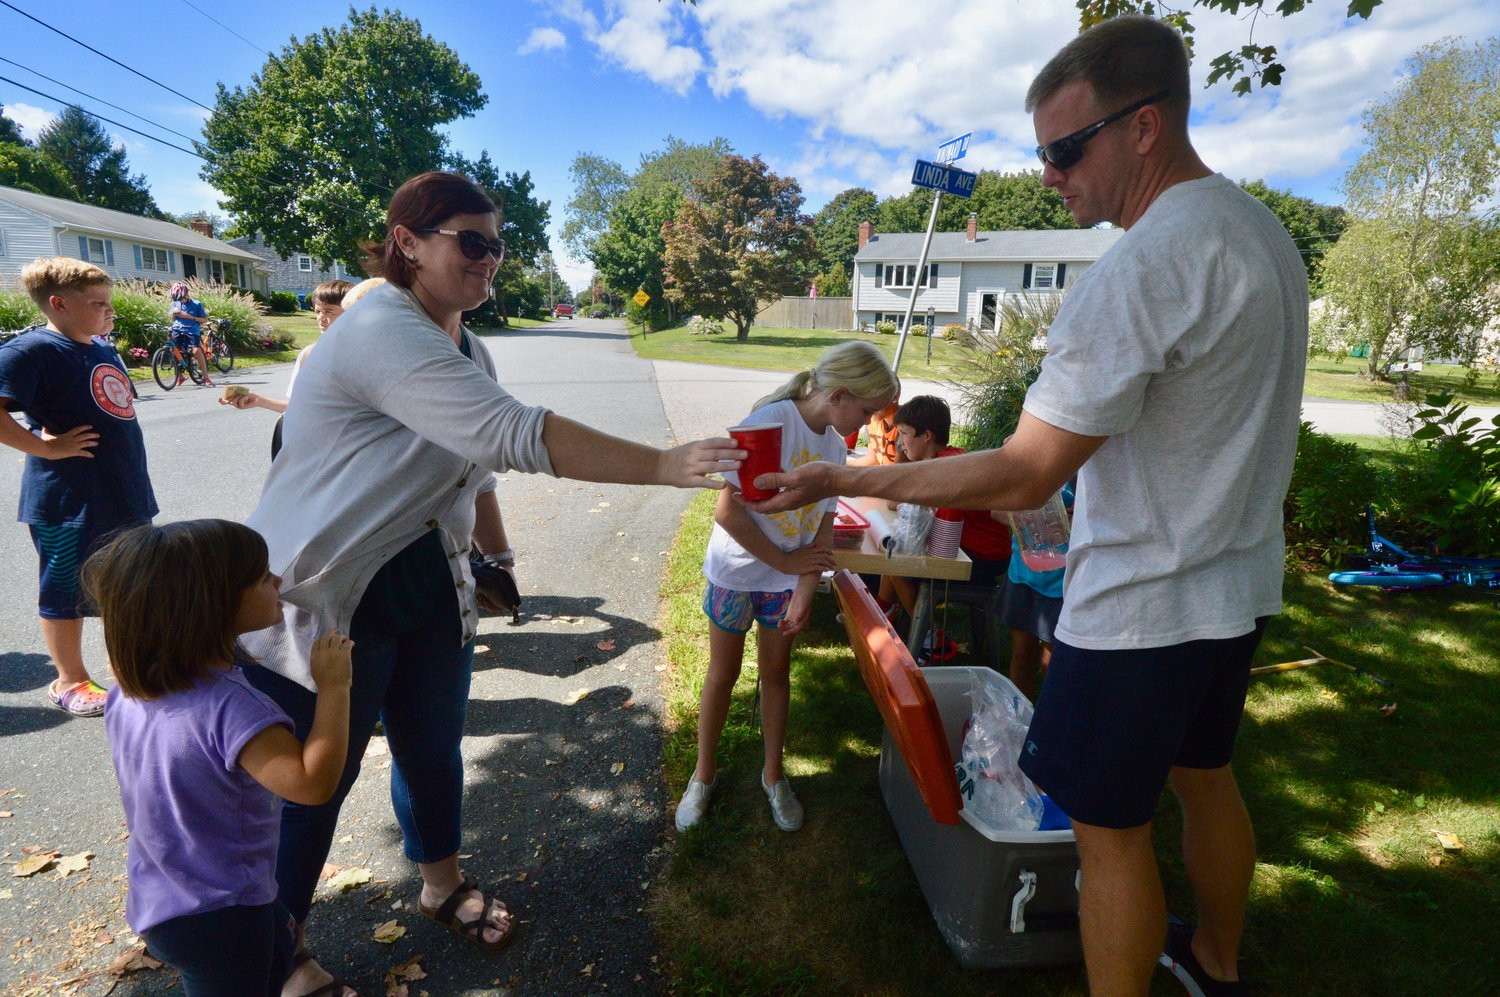 Jennifer Ferreira takes a cup of lemonade from Aaron Schaub for her 4-year-old daughter,  Avery (left). Ms Ferreira is a classmate of Mr. Schaub's at the Naval War College.